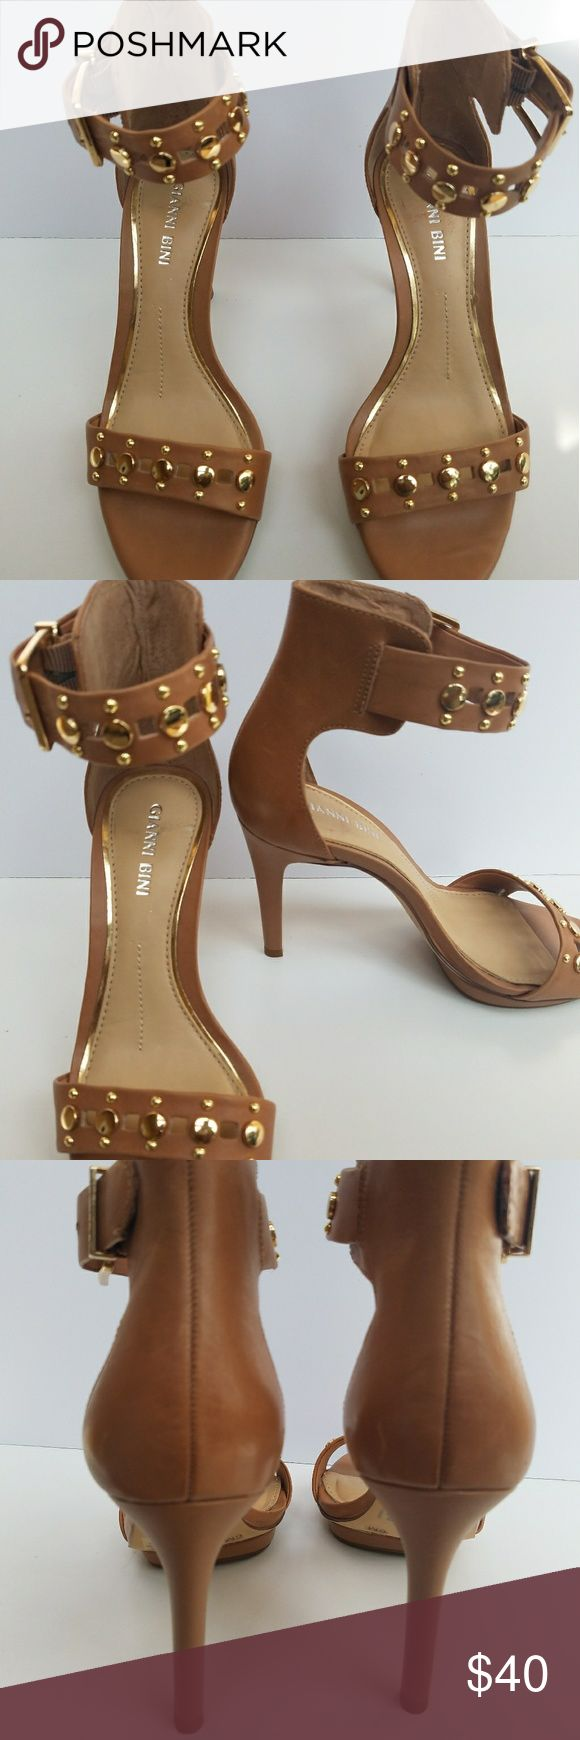 Gianni Bini Tan Shswnell Studded Ankle-Strap Dress Sandals. Perfect to dress up or just go caaual. Gianni Bini Shoes Heels